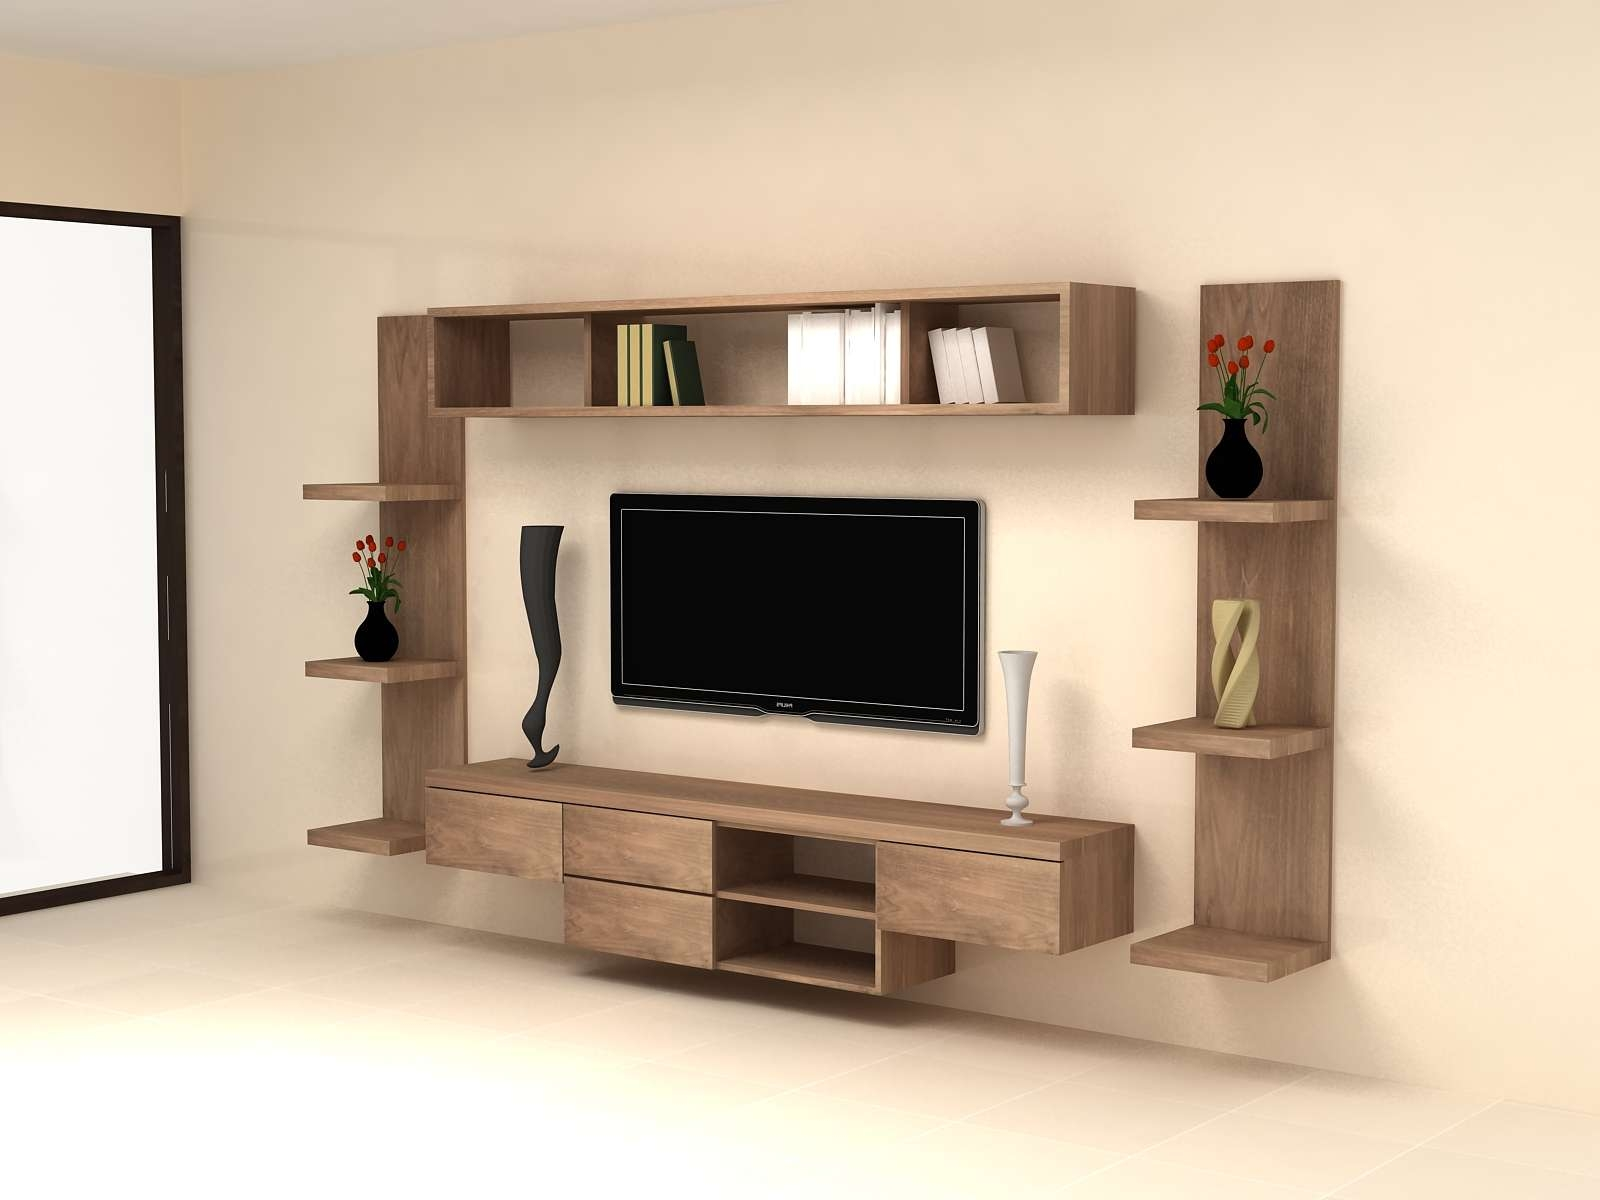 displaying photos of modern design tv cabinets view 15 of 20 photos. Black Bedroom Furniture Sets. Home Design Ideas